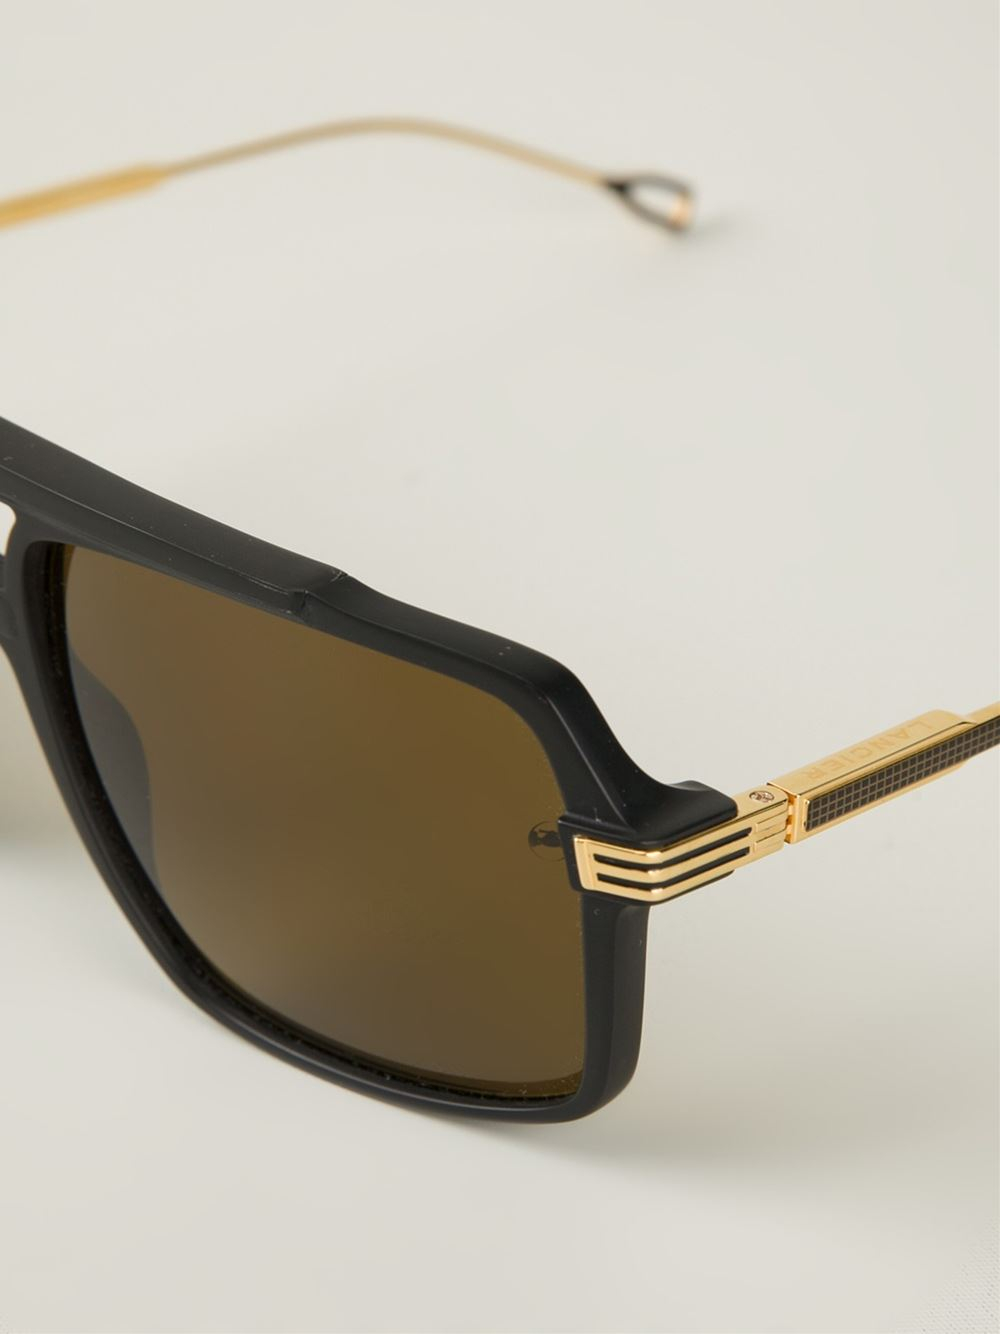 Dita eyewear Lancier X Dita Aviator Sunglasses in Black ... Dita Eyewear